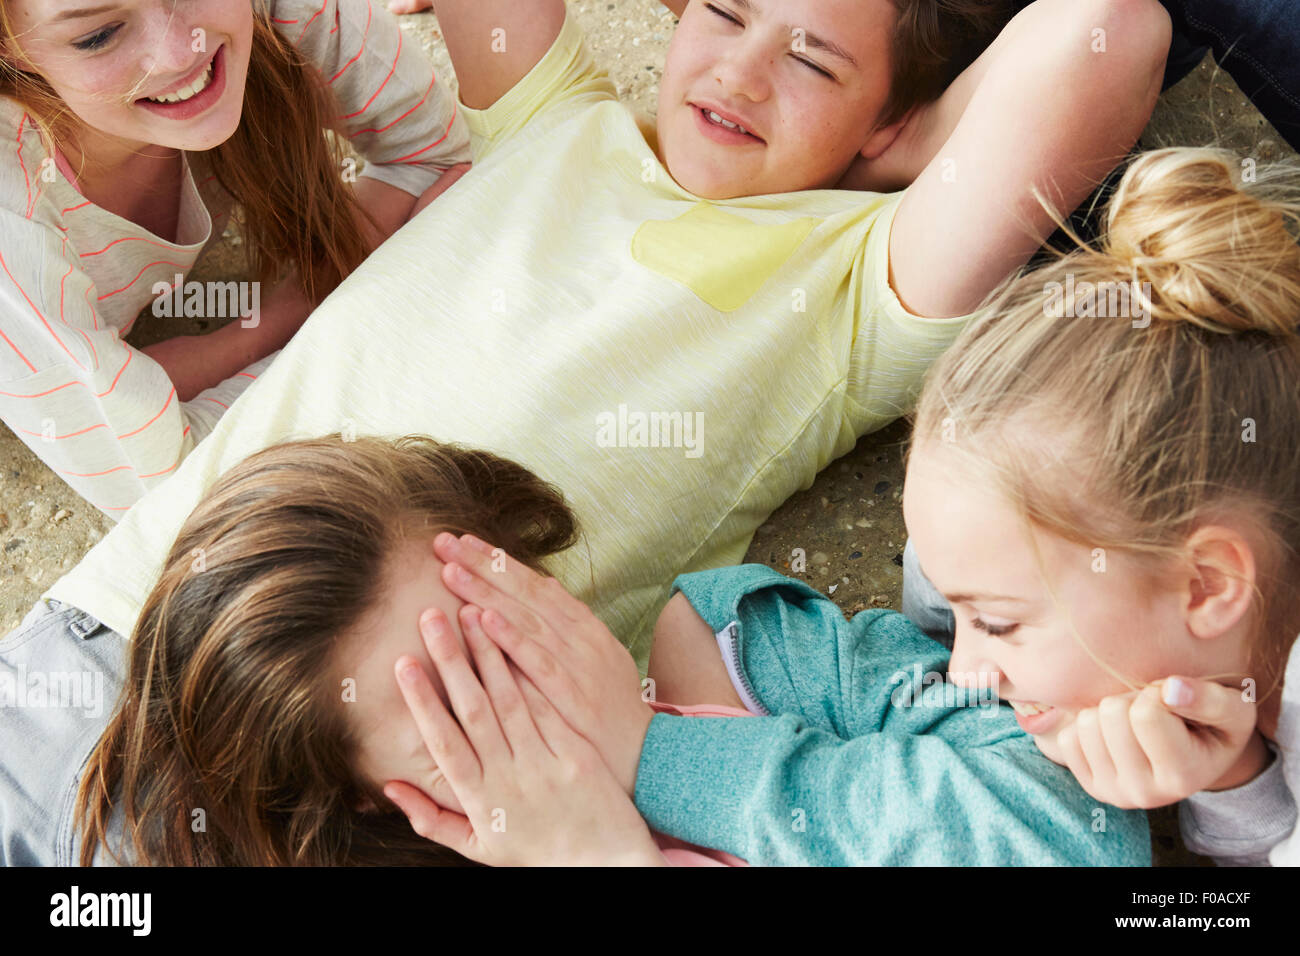 Cropped view of five boys and girls fooling around laughing - Stock Image